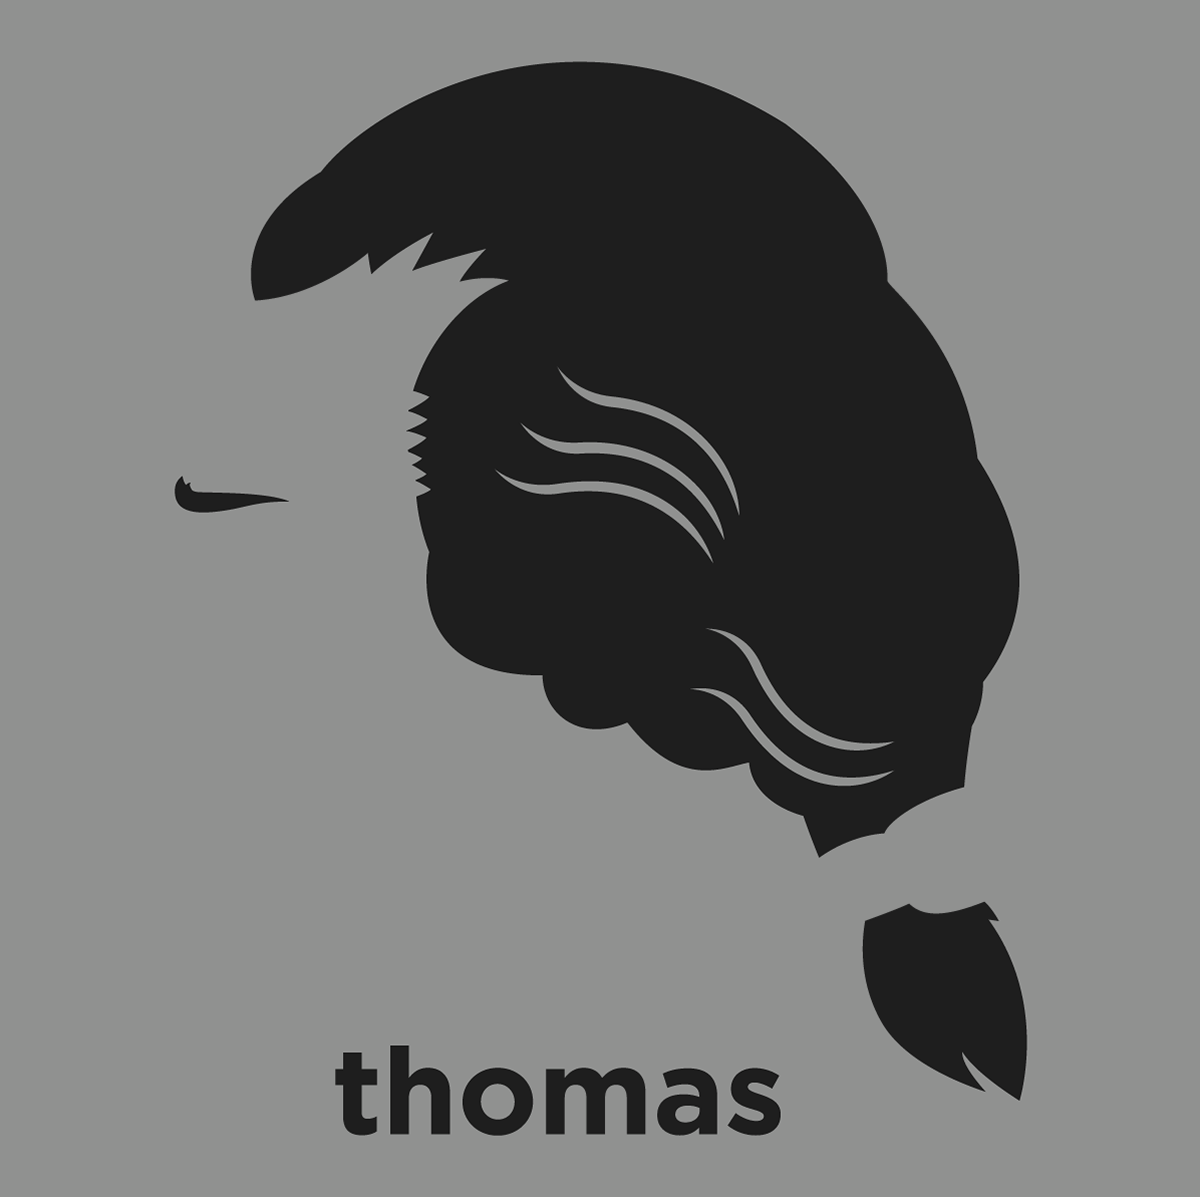 medium resolution of a t shirt with a minimalist hair based illustration of thomas jefferson american founding father the principal author of the declaration of independence